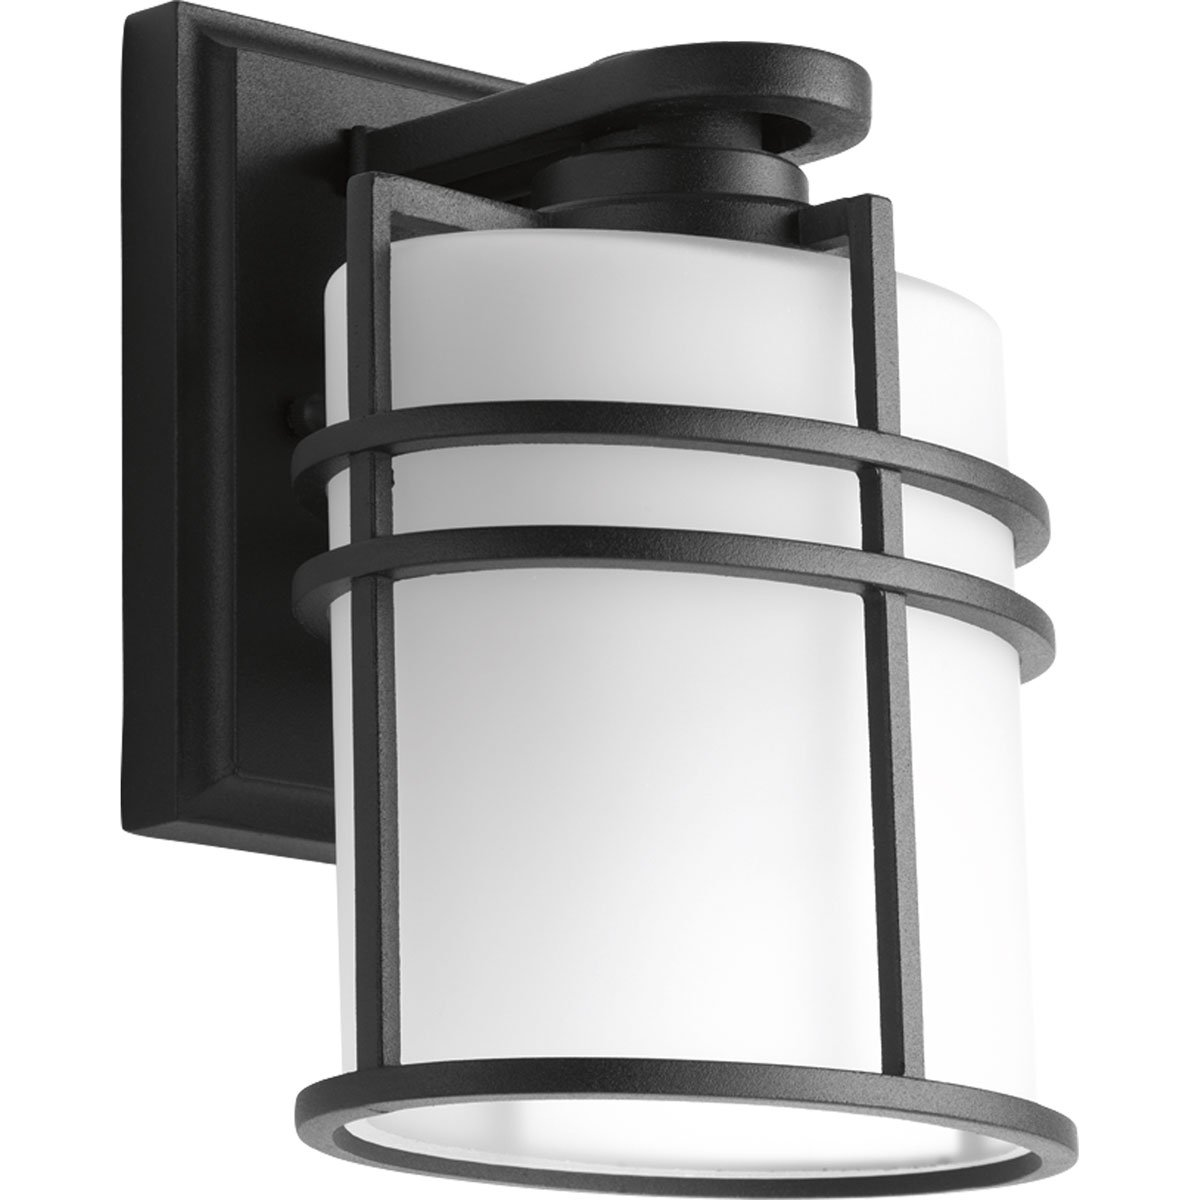 Progress Lighting Outdoor Wall Sconce Progress lighting p6062 31 1 lt wall lantern with etched glass 6 progress lighting p6062 31 1 lt wall lantern with etched glass 6 amazon workwithnaturefo